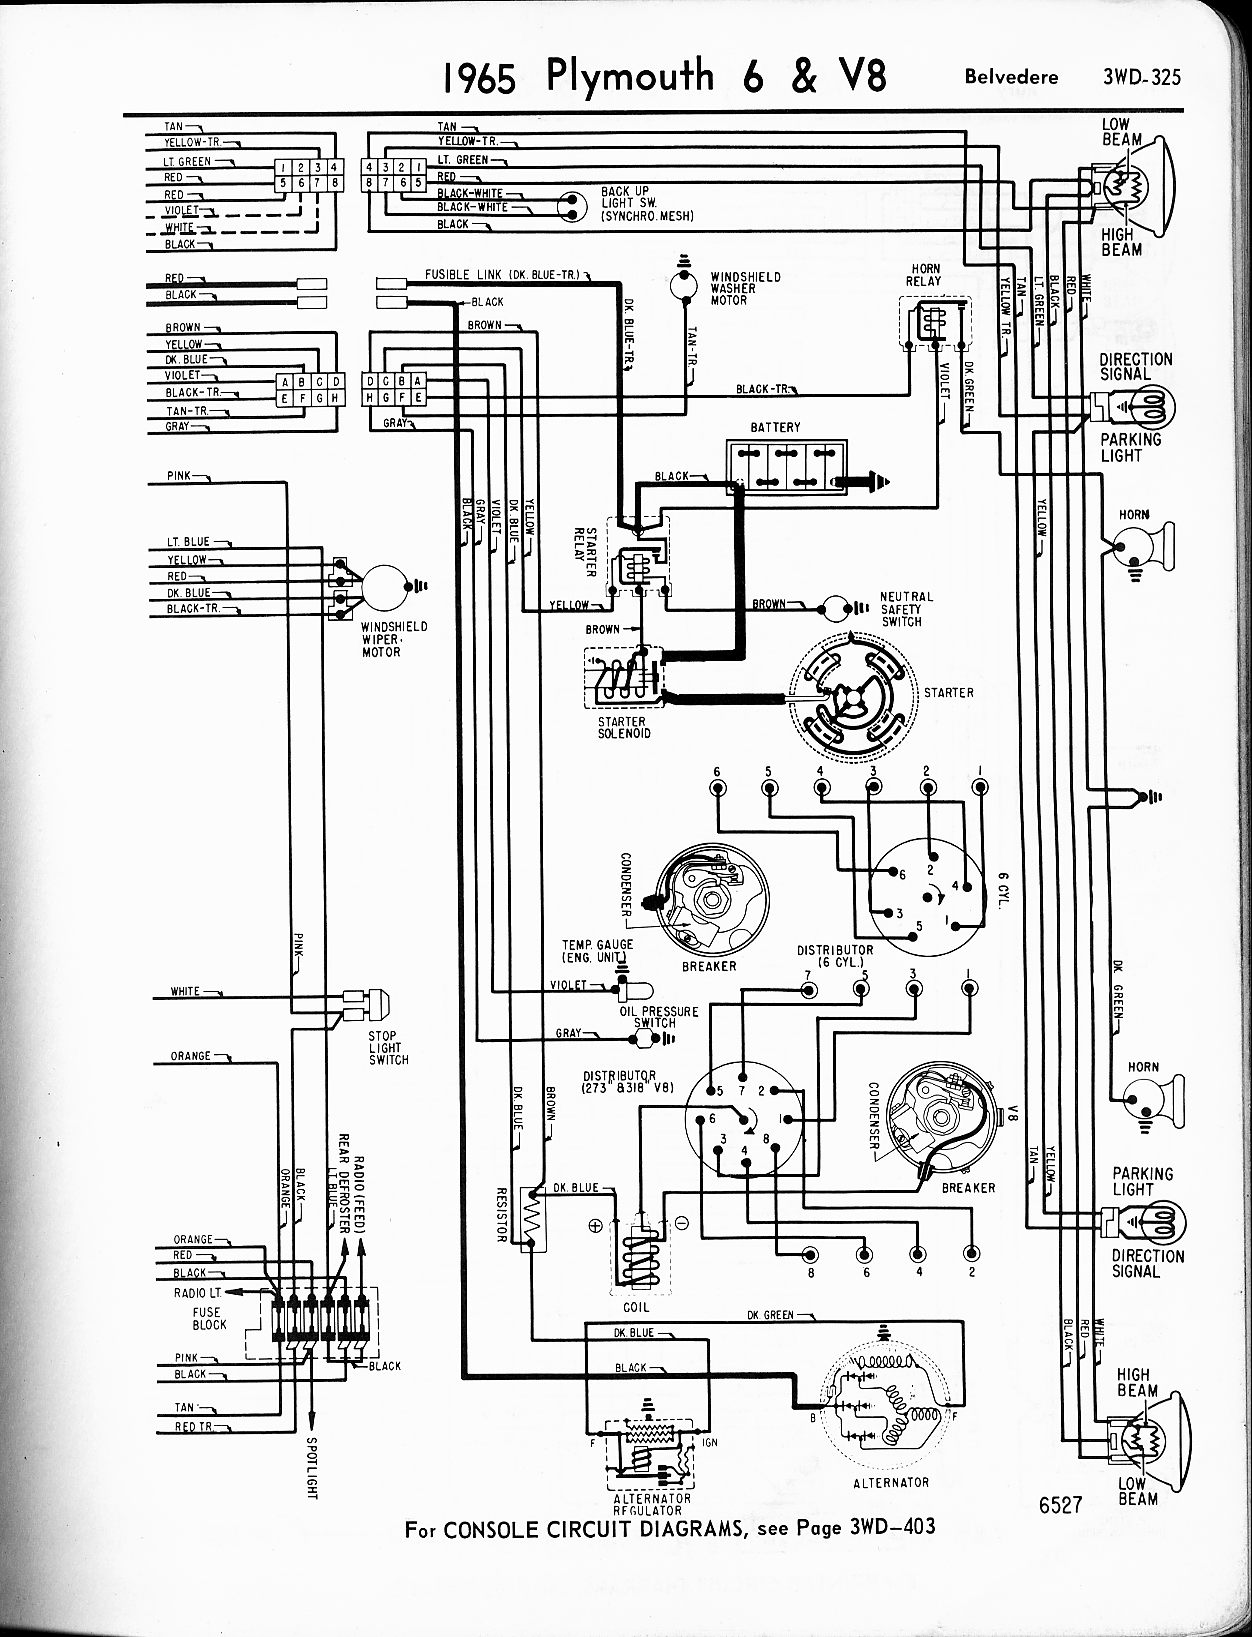 1956 1965 plymouth wiring the old car manual project 1965 plymouth 6 v8 belvedere left page